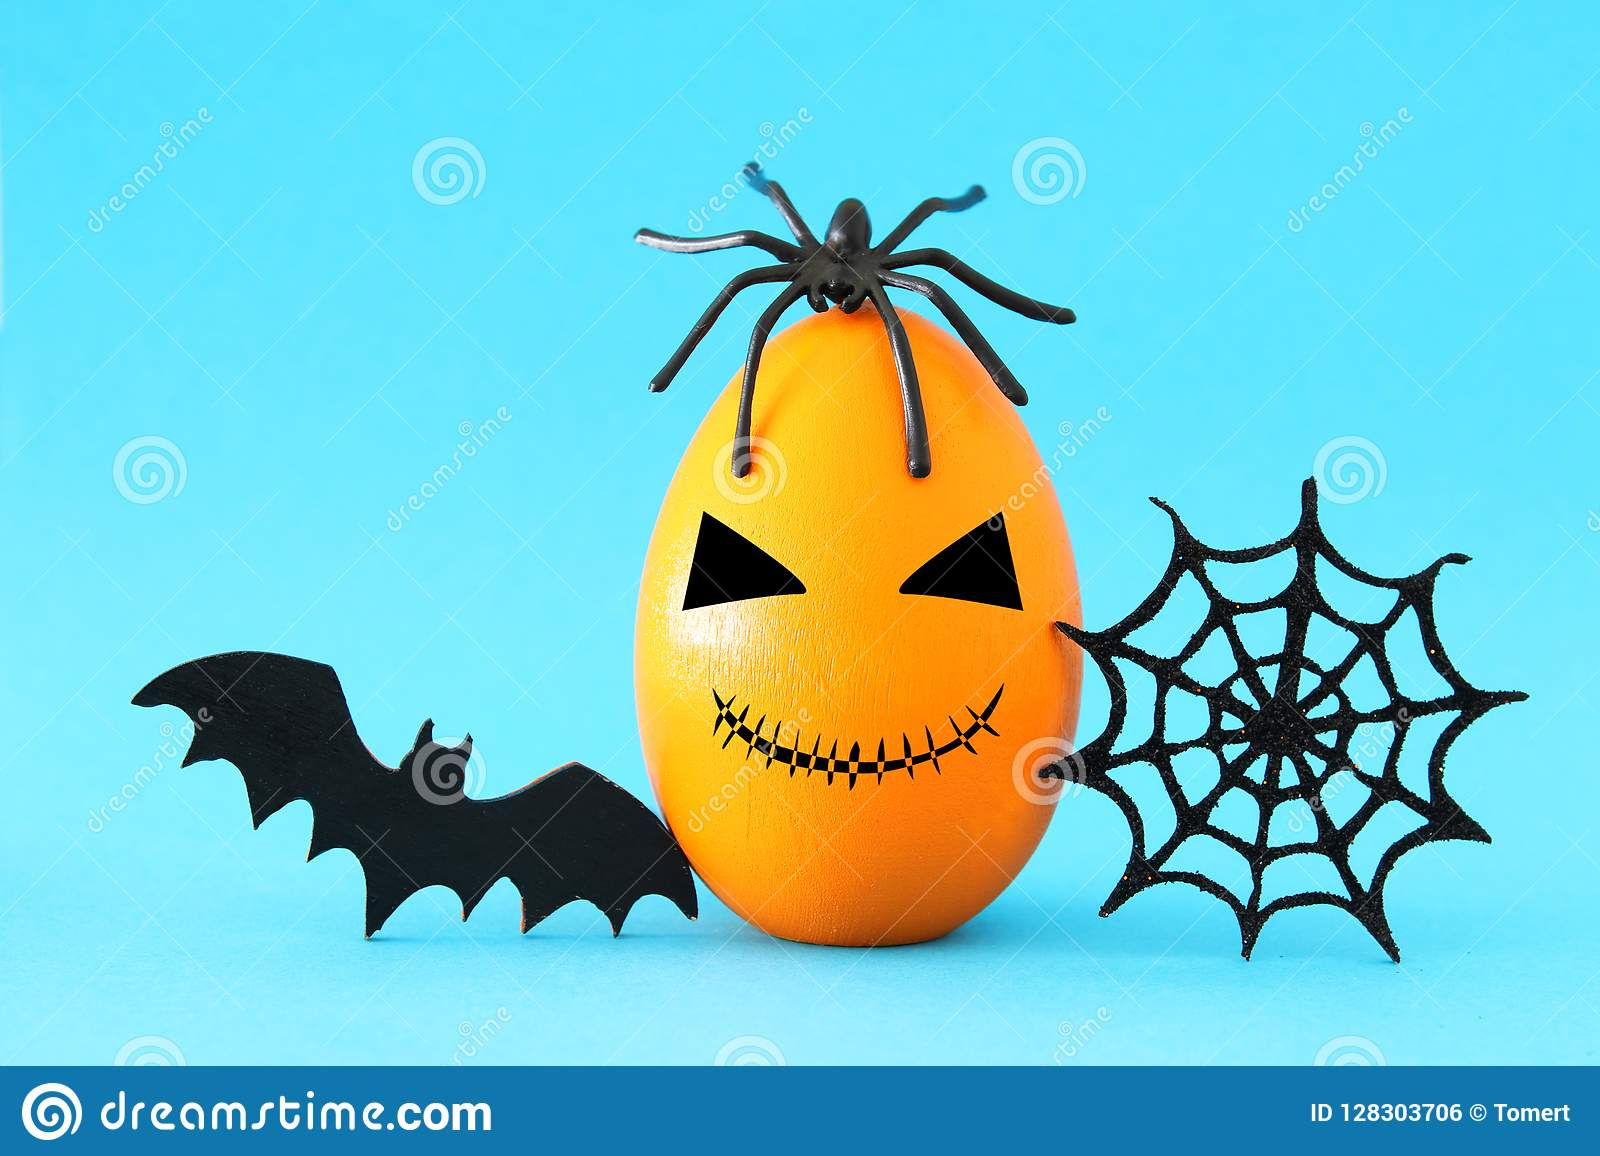 minimal and funny halloween holiday concept. orange egg with scary